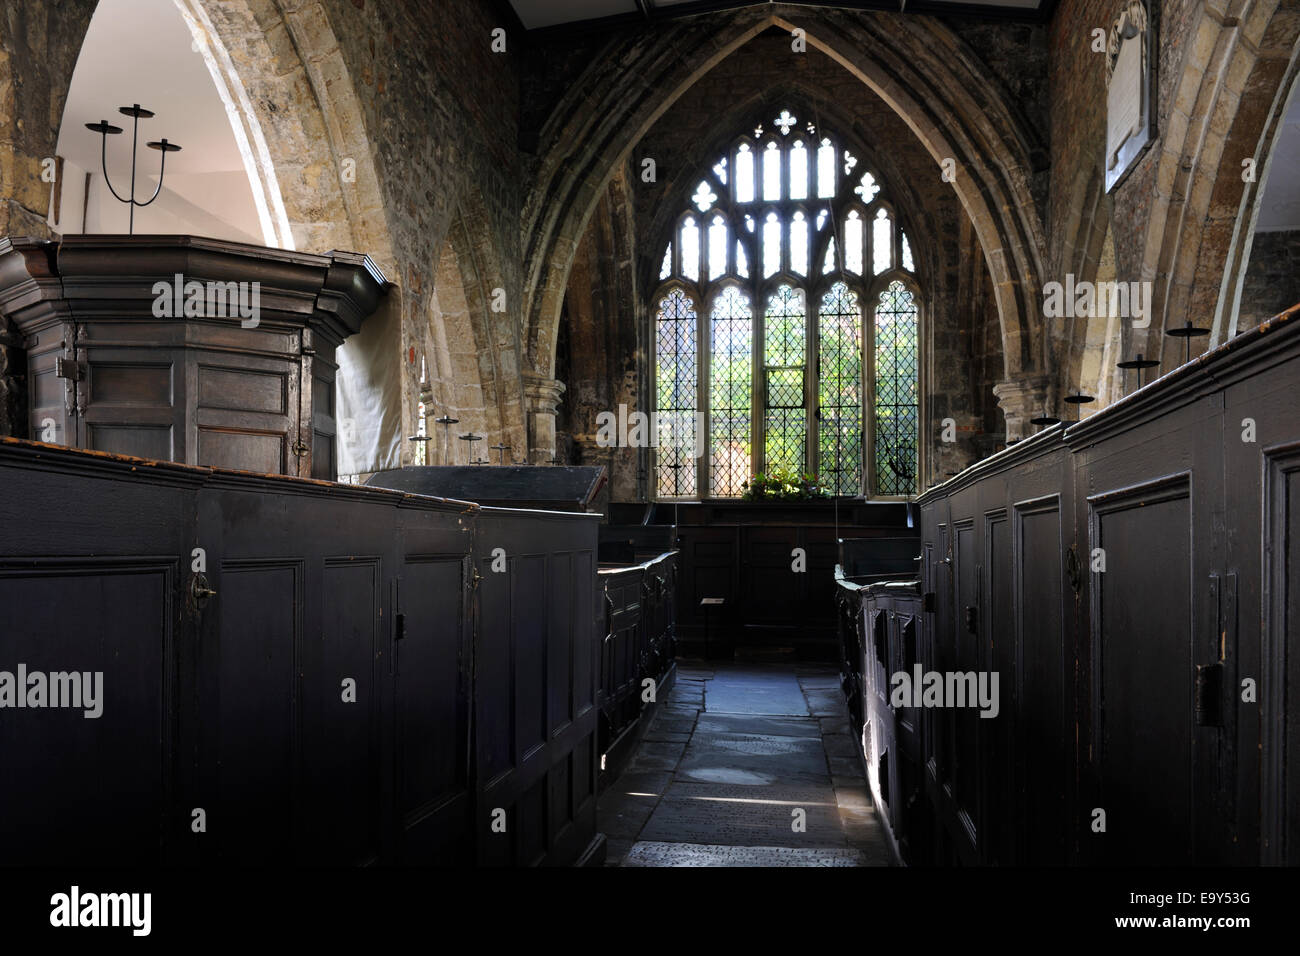 Rare box pews and a double decker pulpit found in Holy Trinity Church, Goodramgate, City of York, England - Stock Image